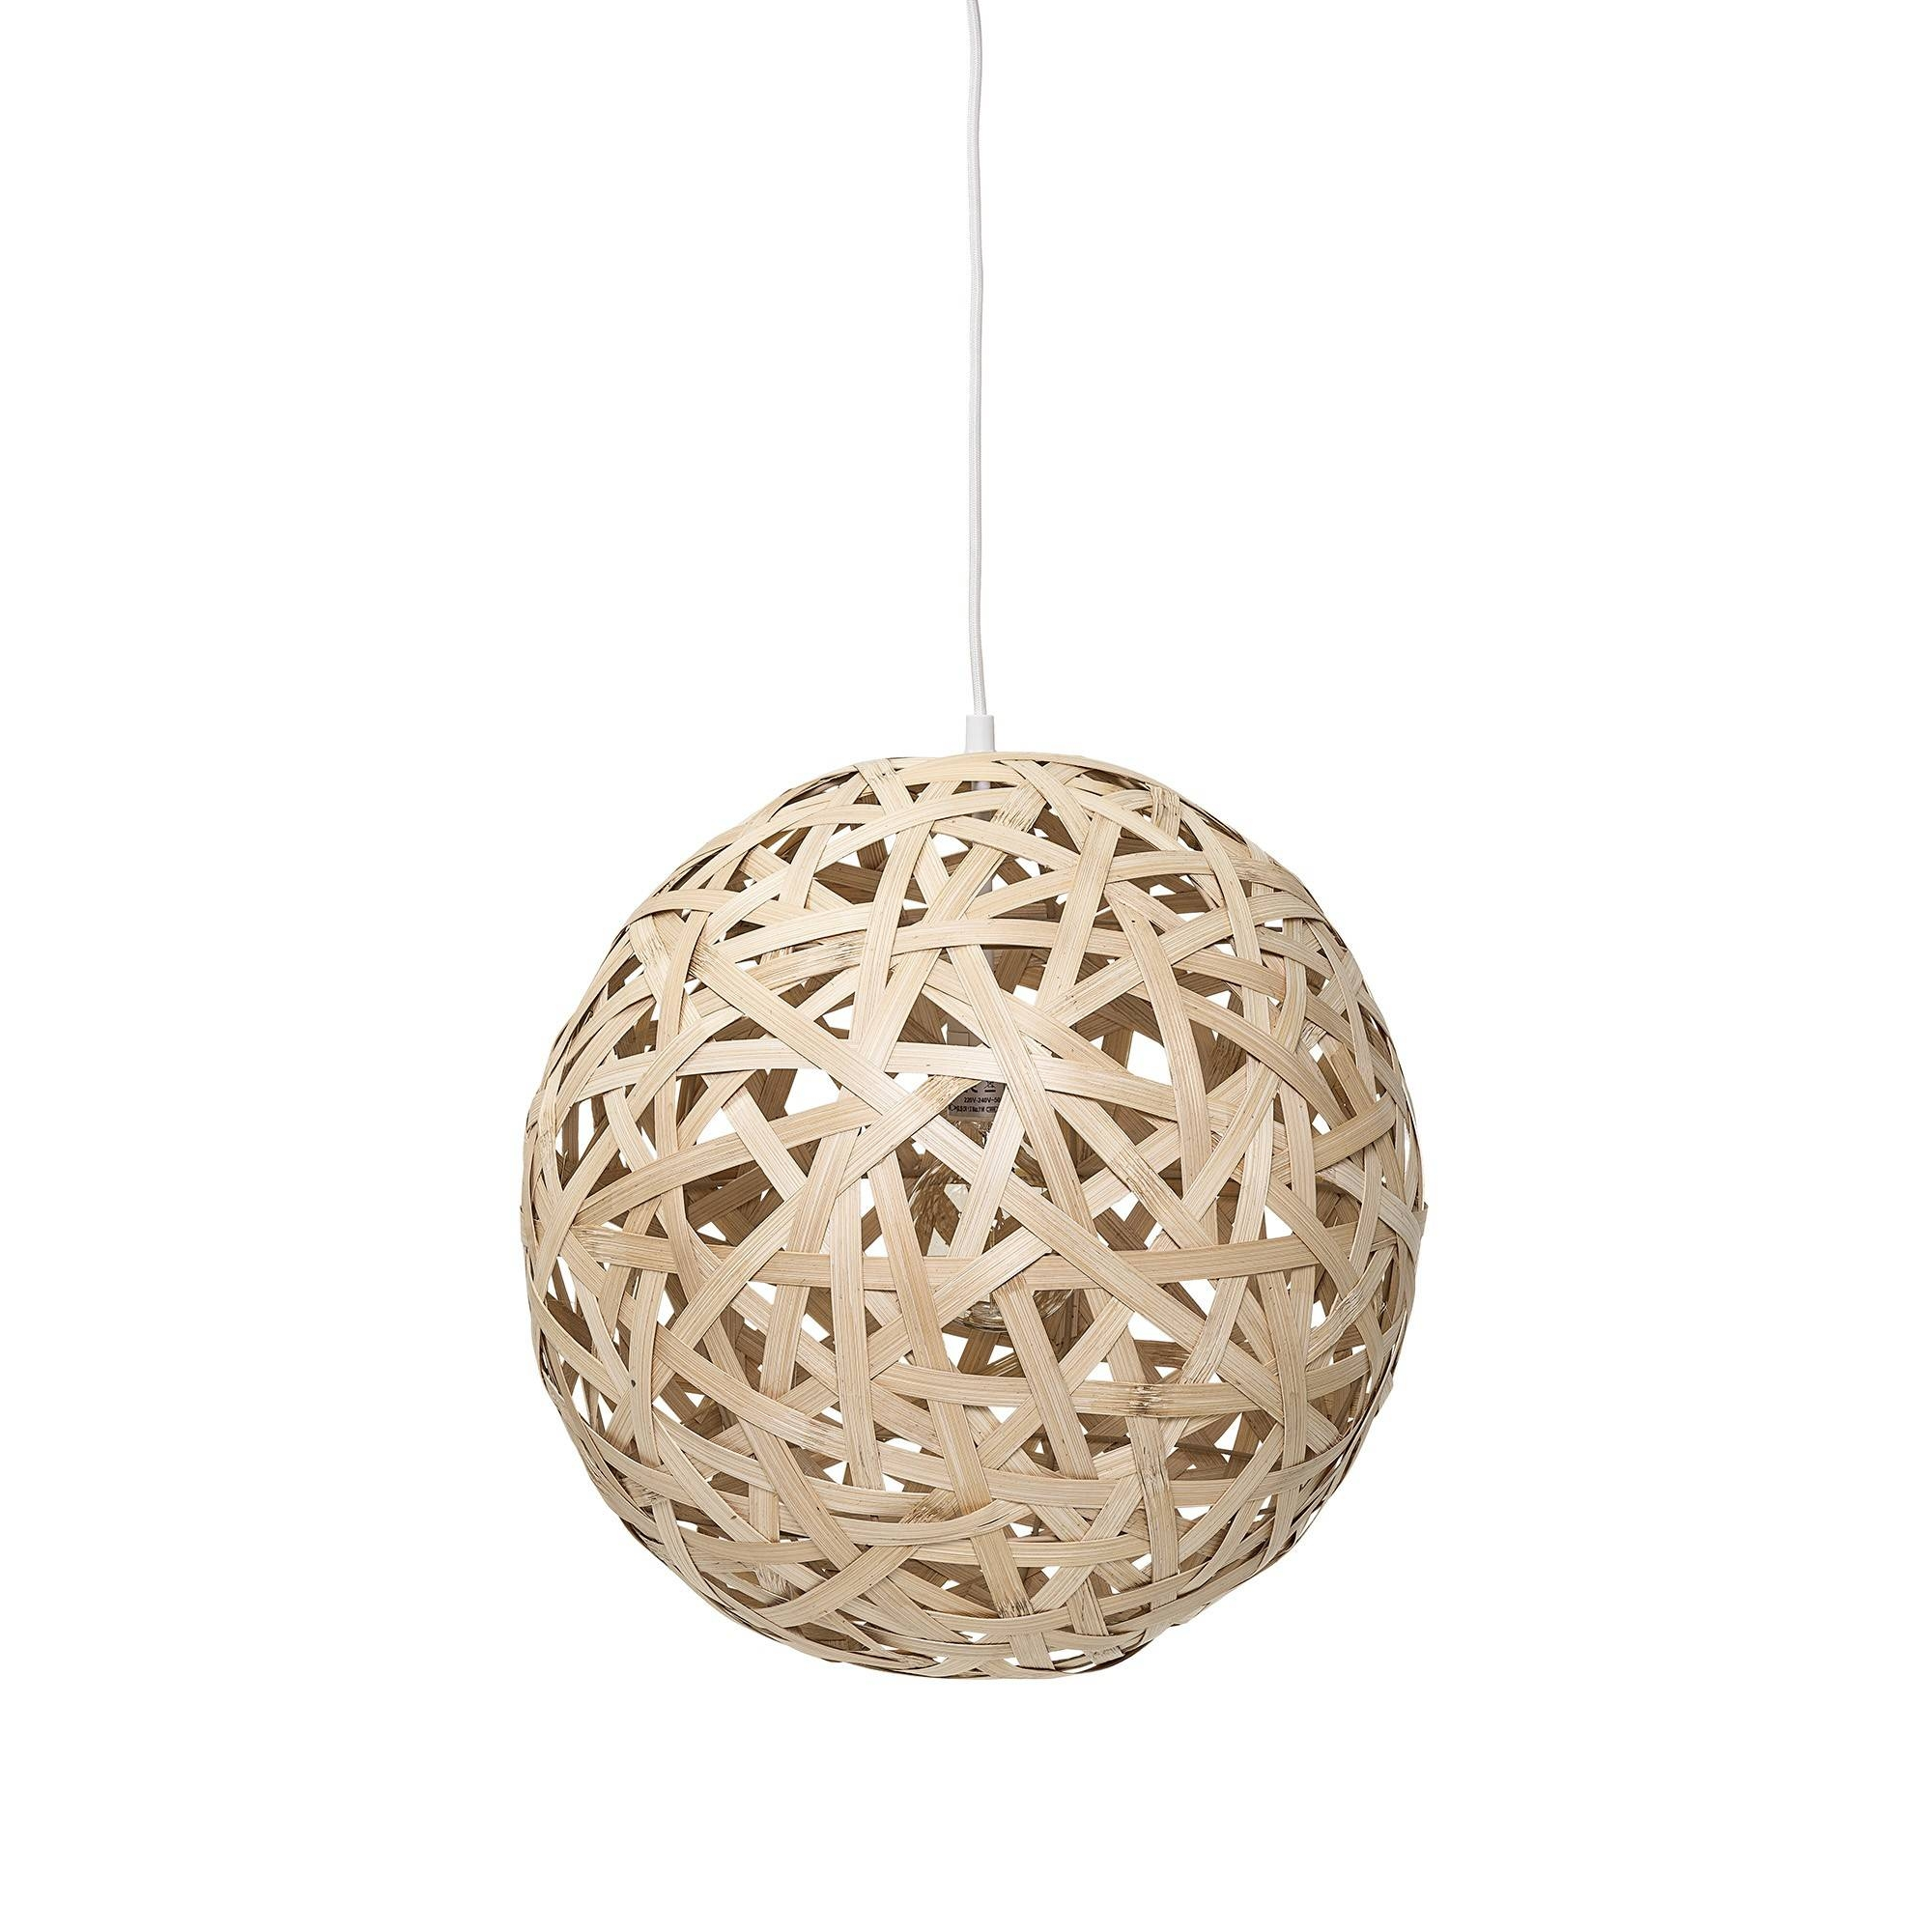 Bloomingville Pendant Lamp, Natural In Bamboo pertaining to Natural Pendant Lights (Image 3 of 15)